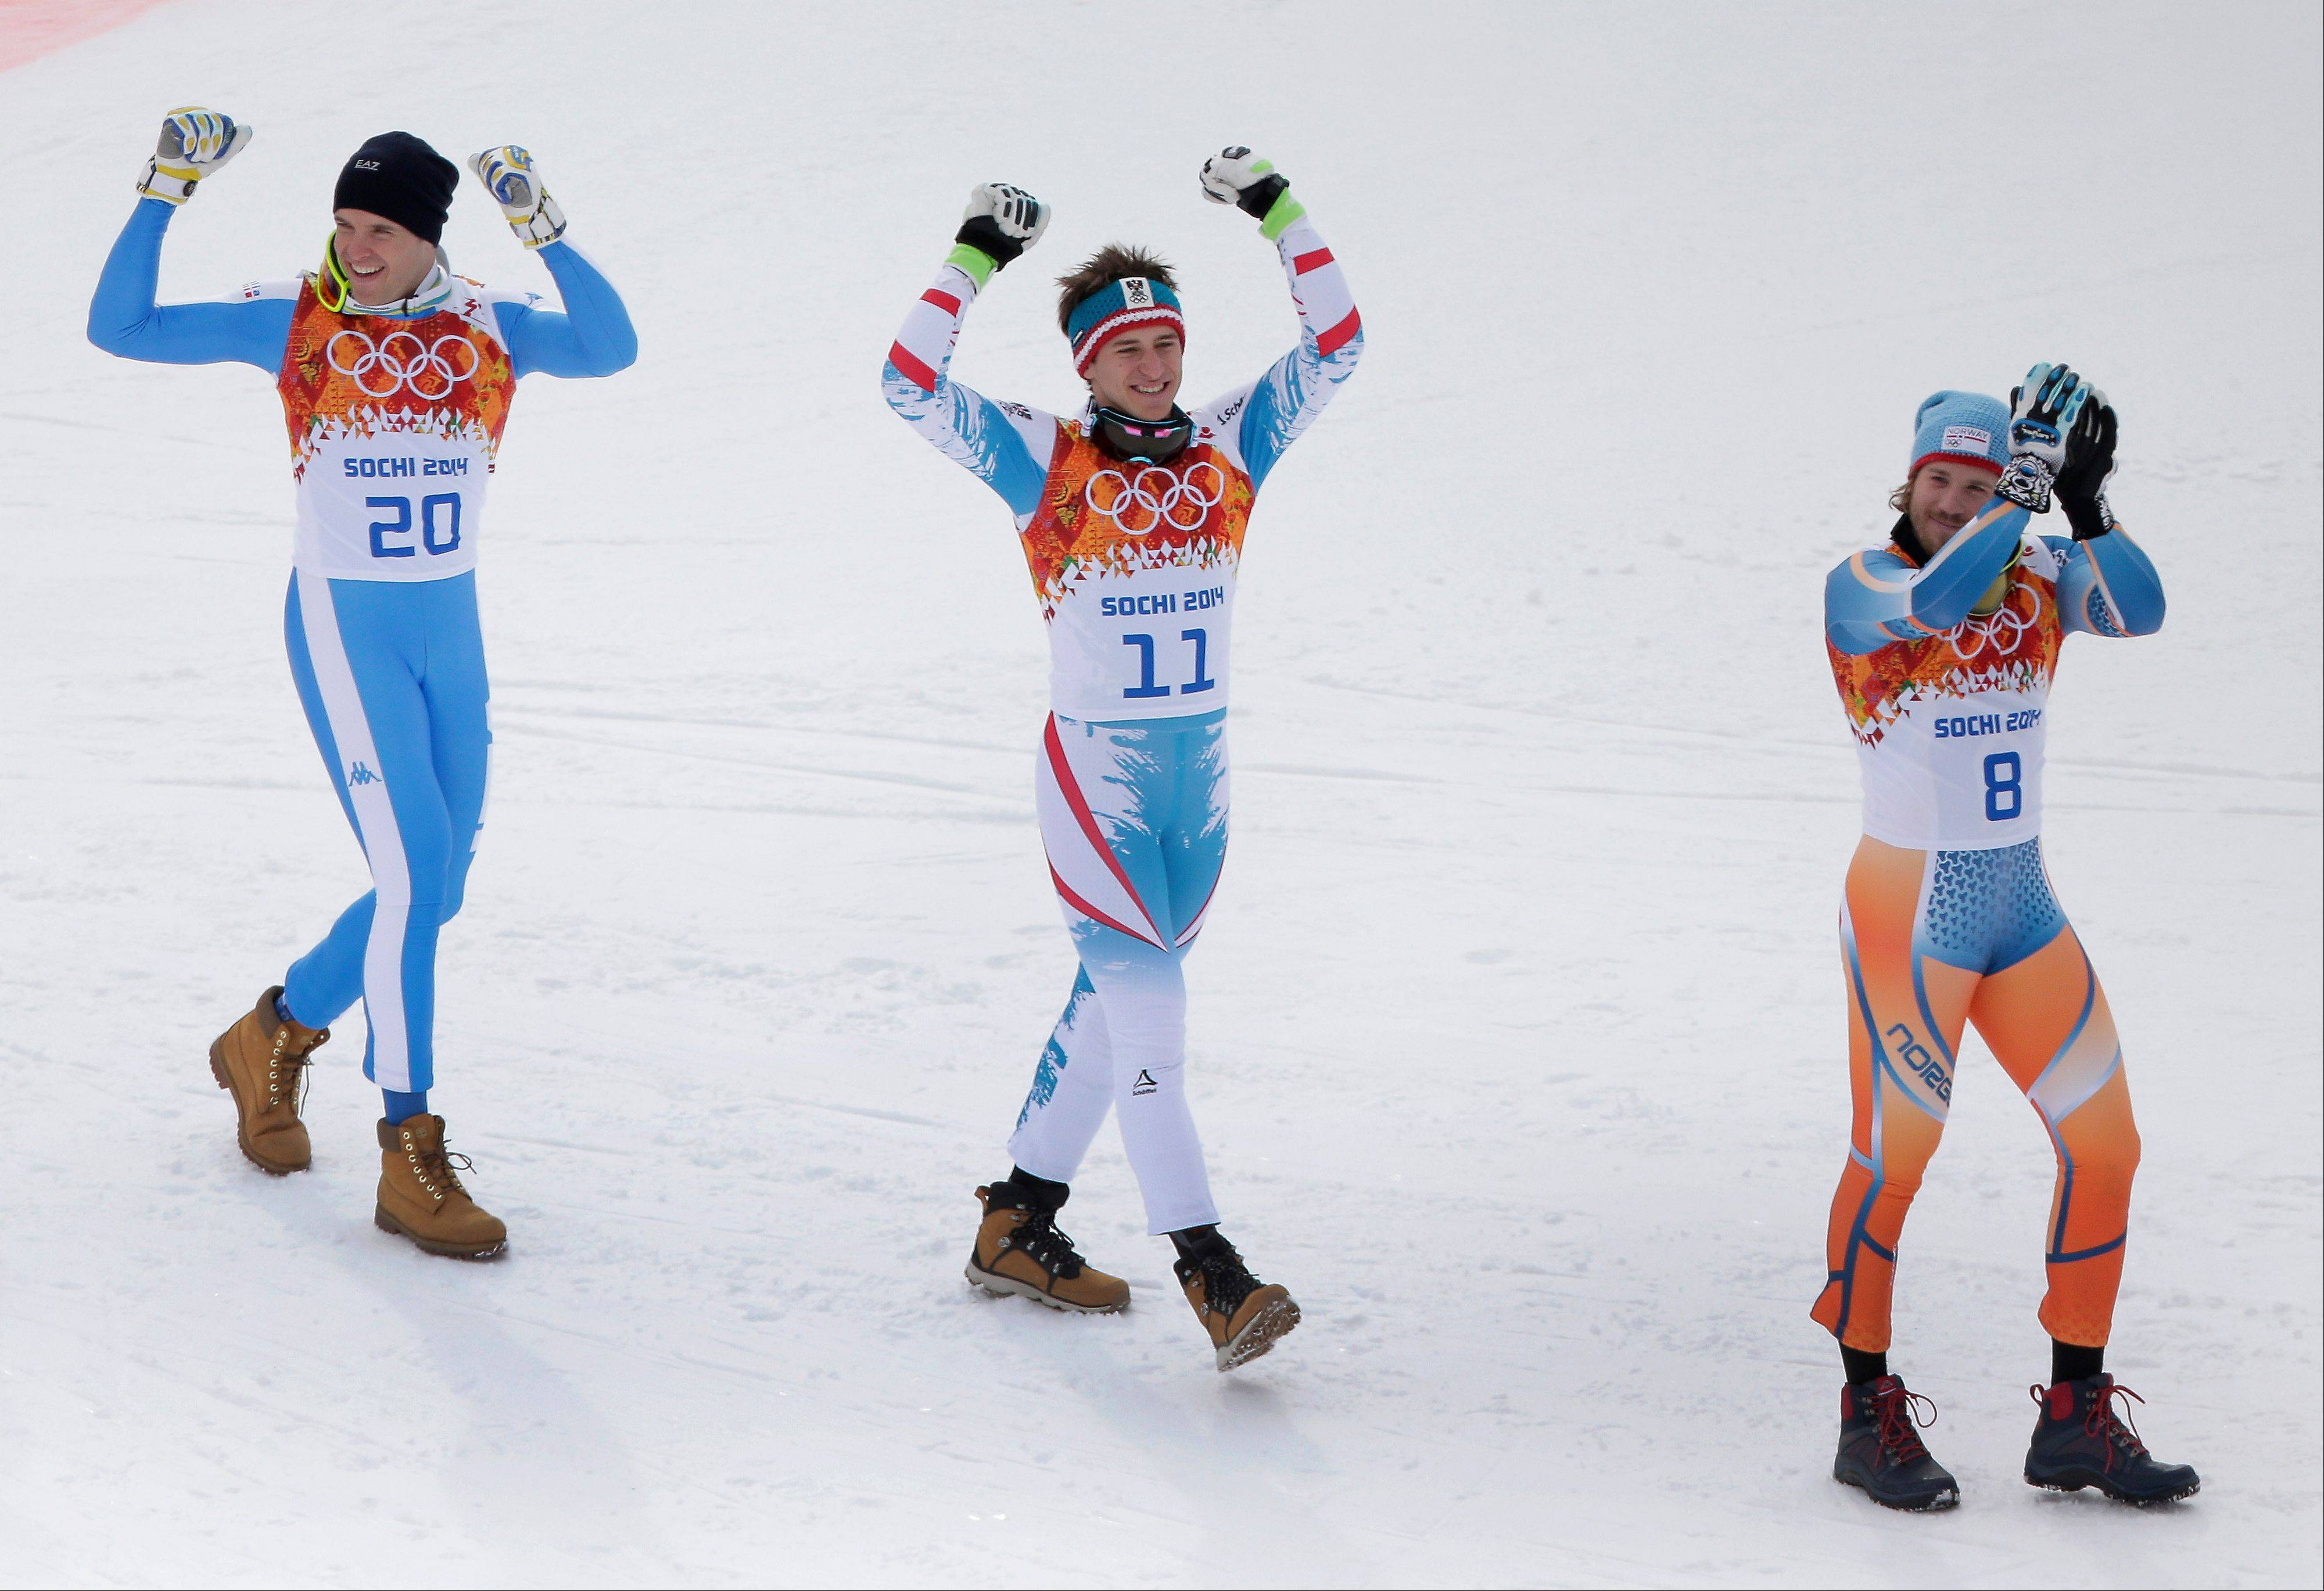 Austria's Matthias Mayer (11), Italy's Christof Innerhofer (20, and Norway's Kjetil Jansrud (8) walk to the flower ceremony after finishing the men's downhill event at the 2014 Winter Olympics, Sunday, Feb. 9, 2014, in Krasnaya Polyana, Russia.